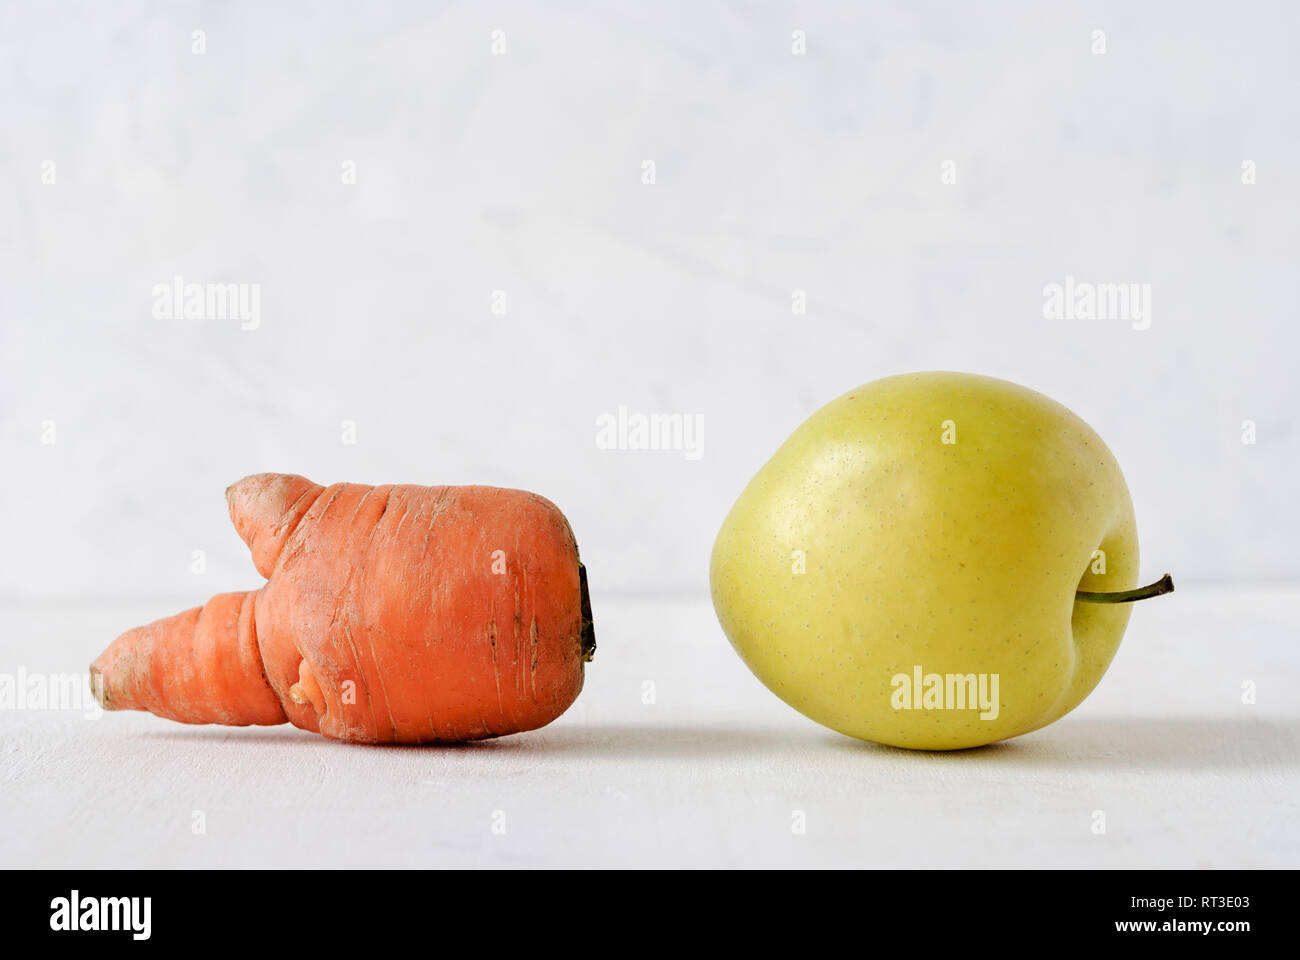 Misshapen ugly fresh golden apple and carrot with appendages on white viewed low angle close up - Stock Image